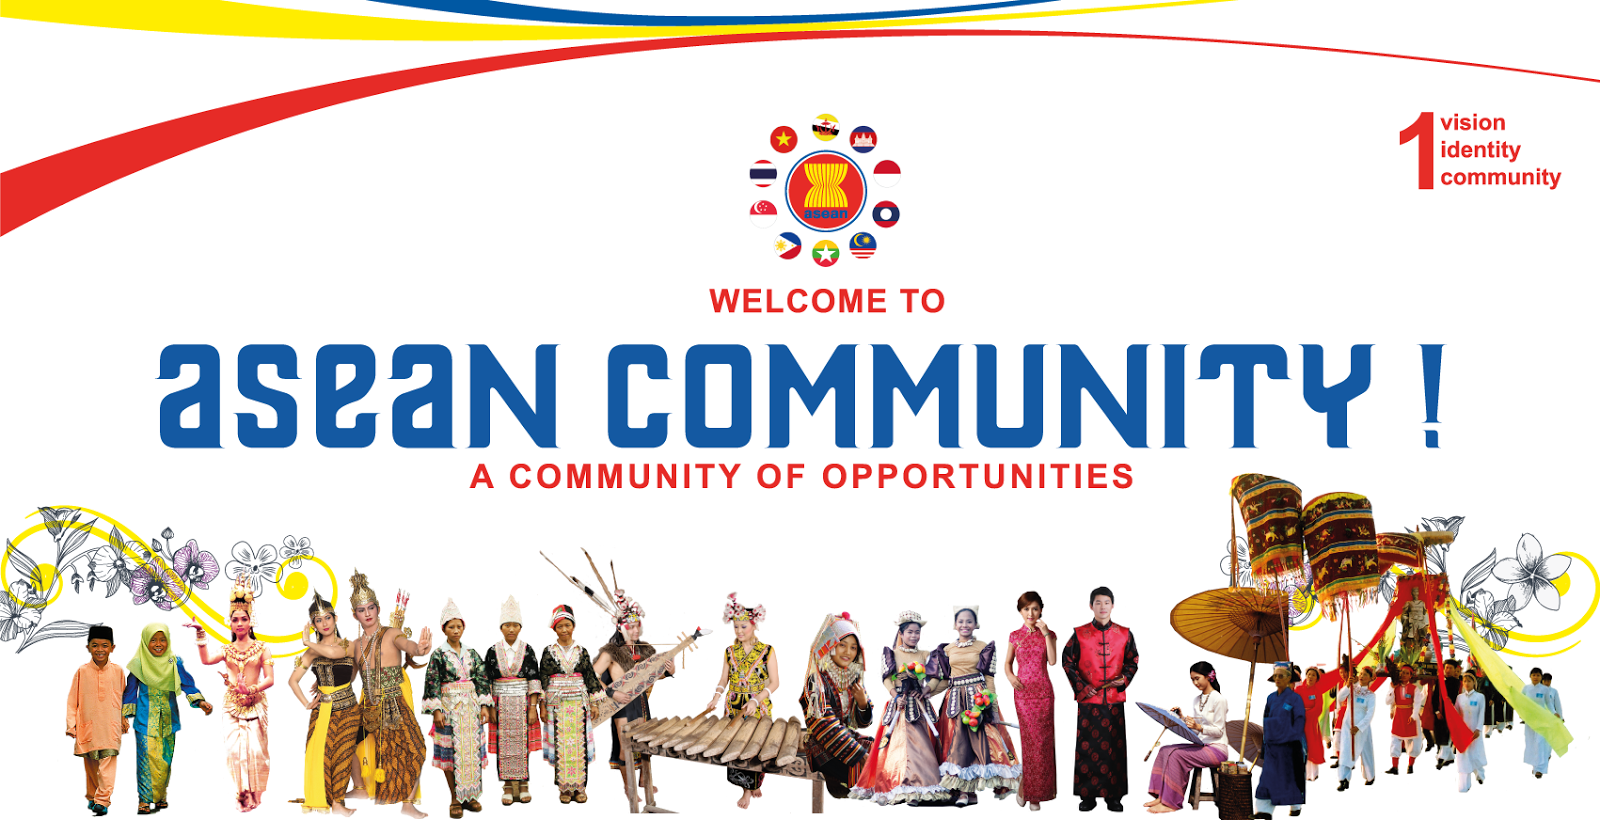 formation of asean About the asean scholarships the asean scholarships aim to provide opportunities to the young people of asean to develop their potential and equip them with.